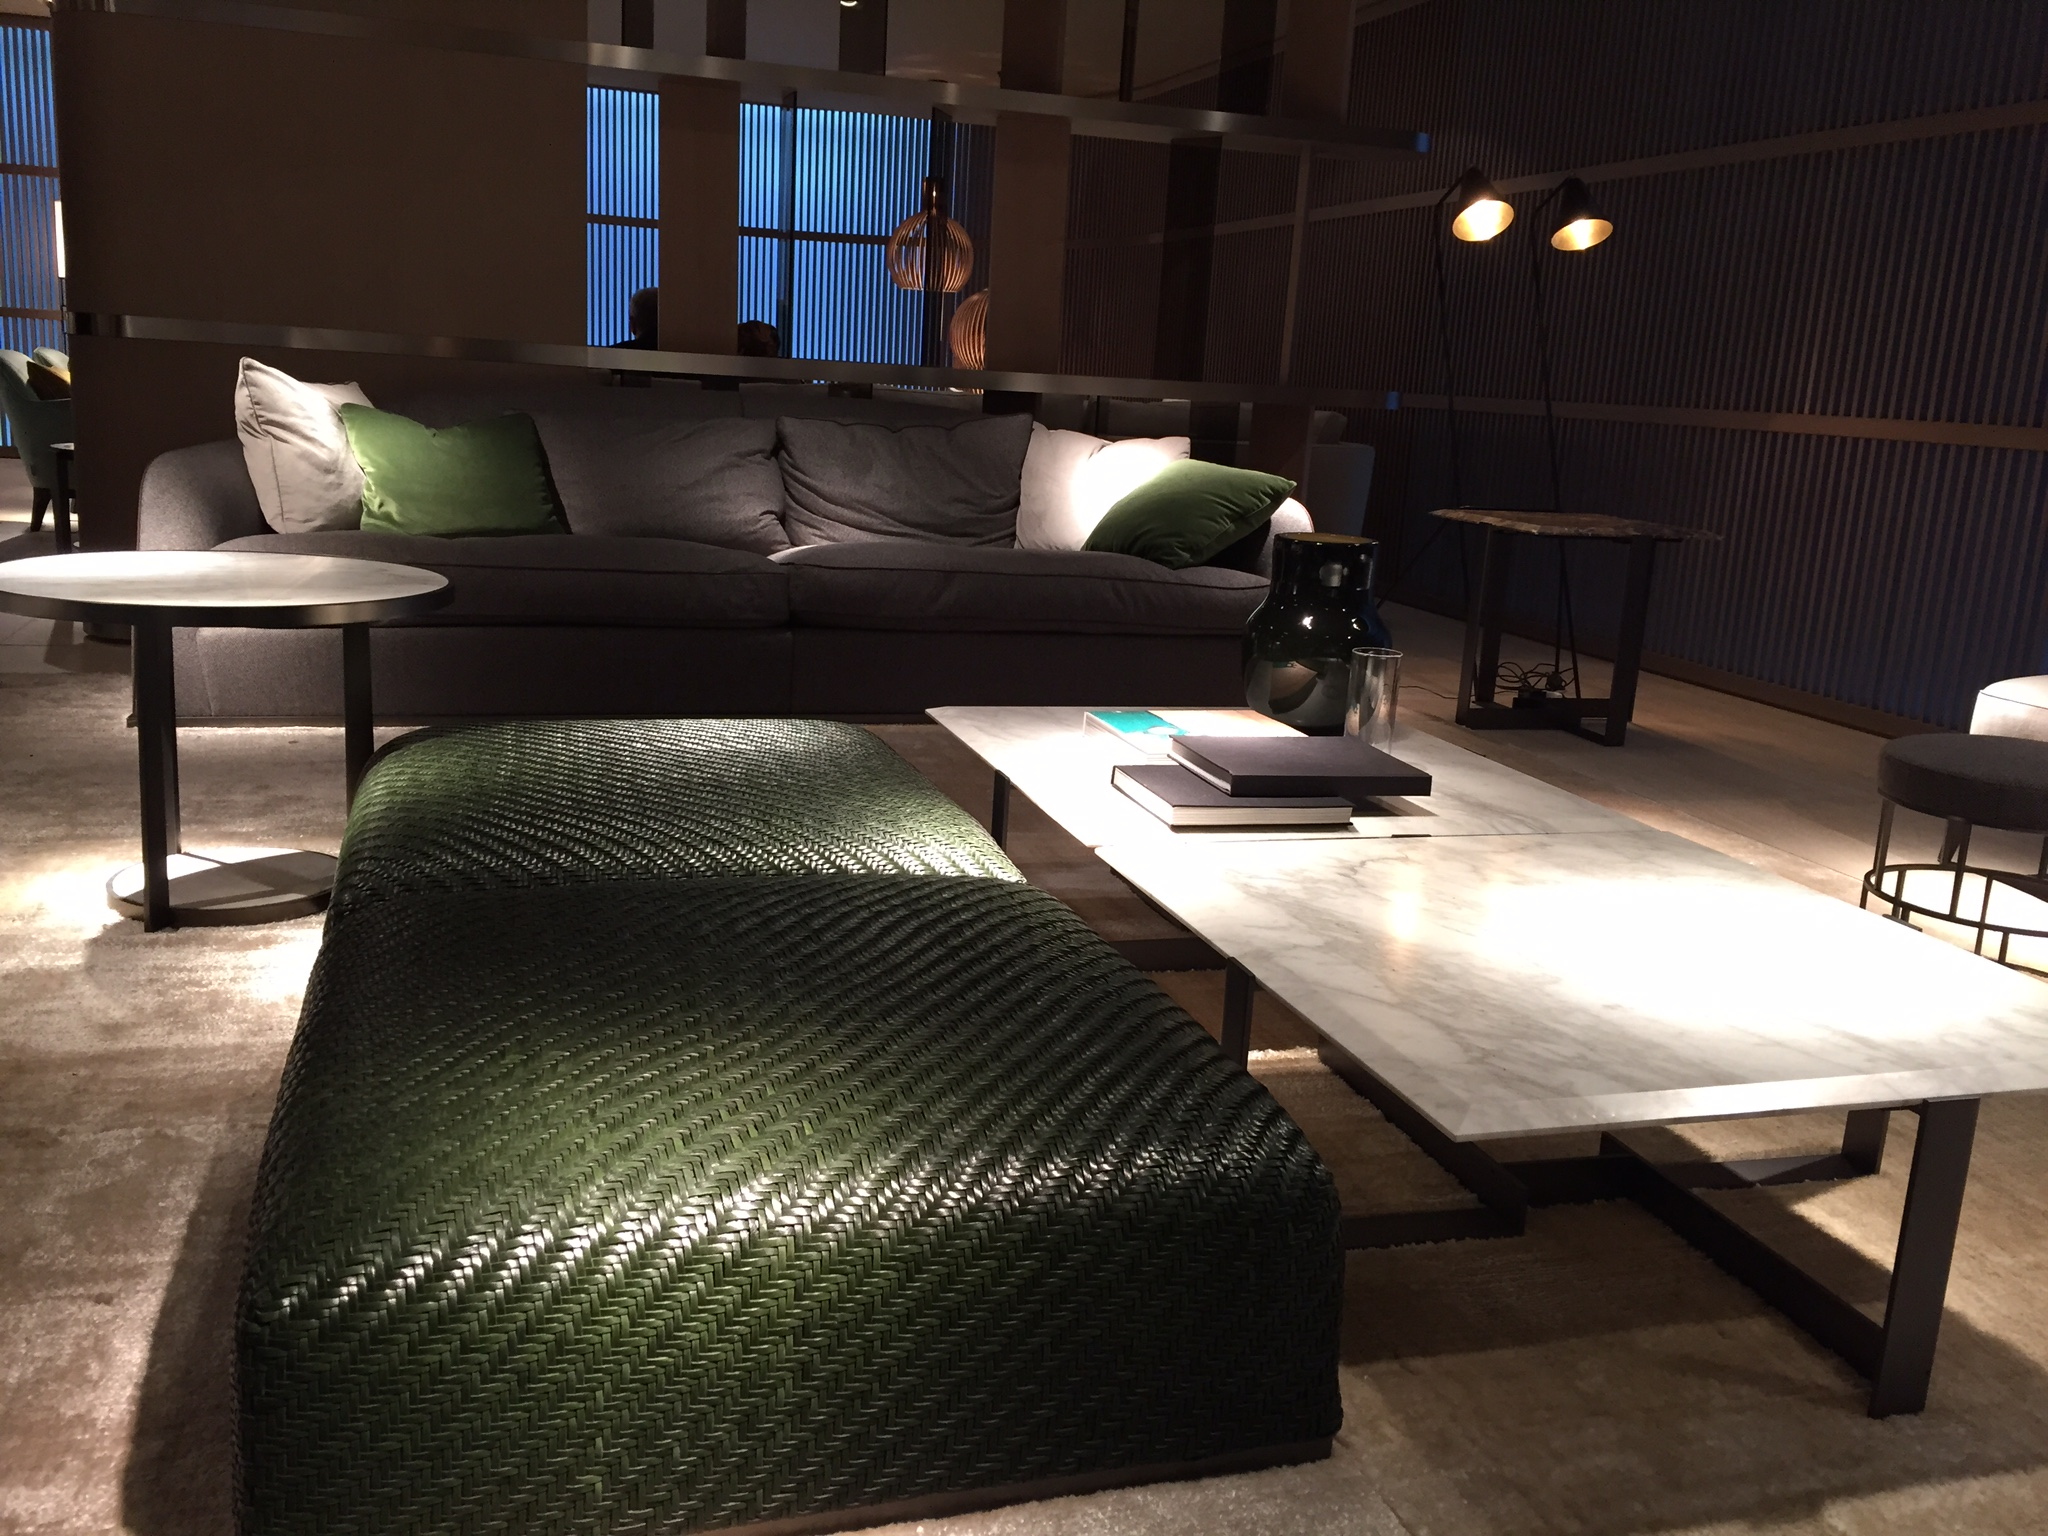 Absolute Interior Decor on latest Interior Design trends from Milan-2